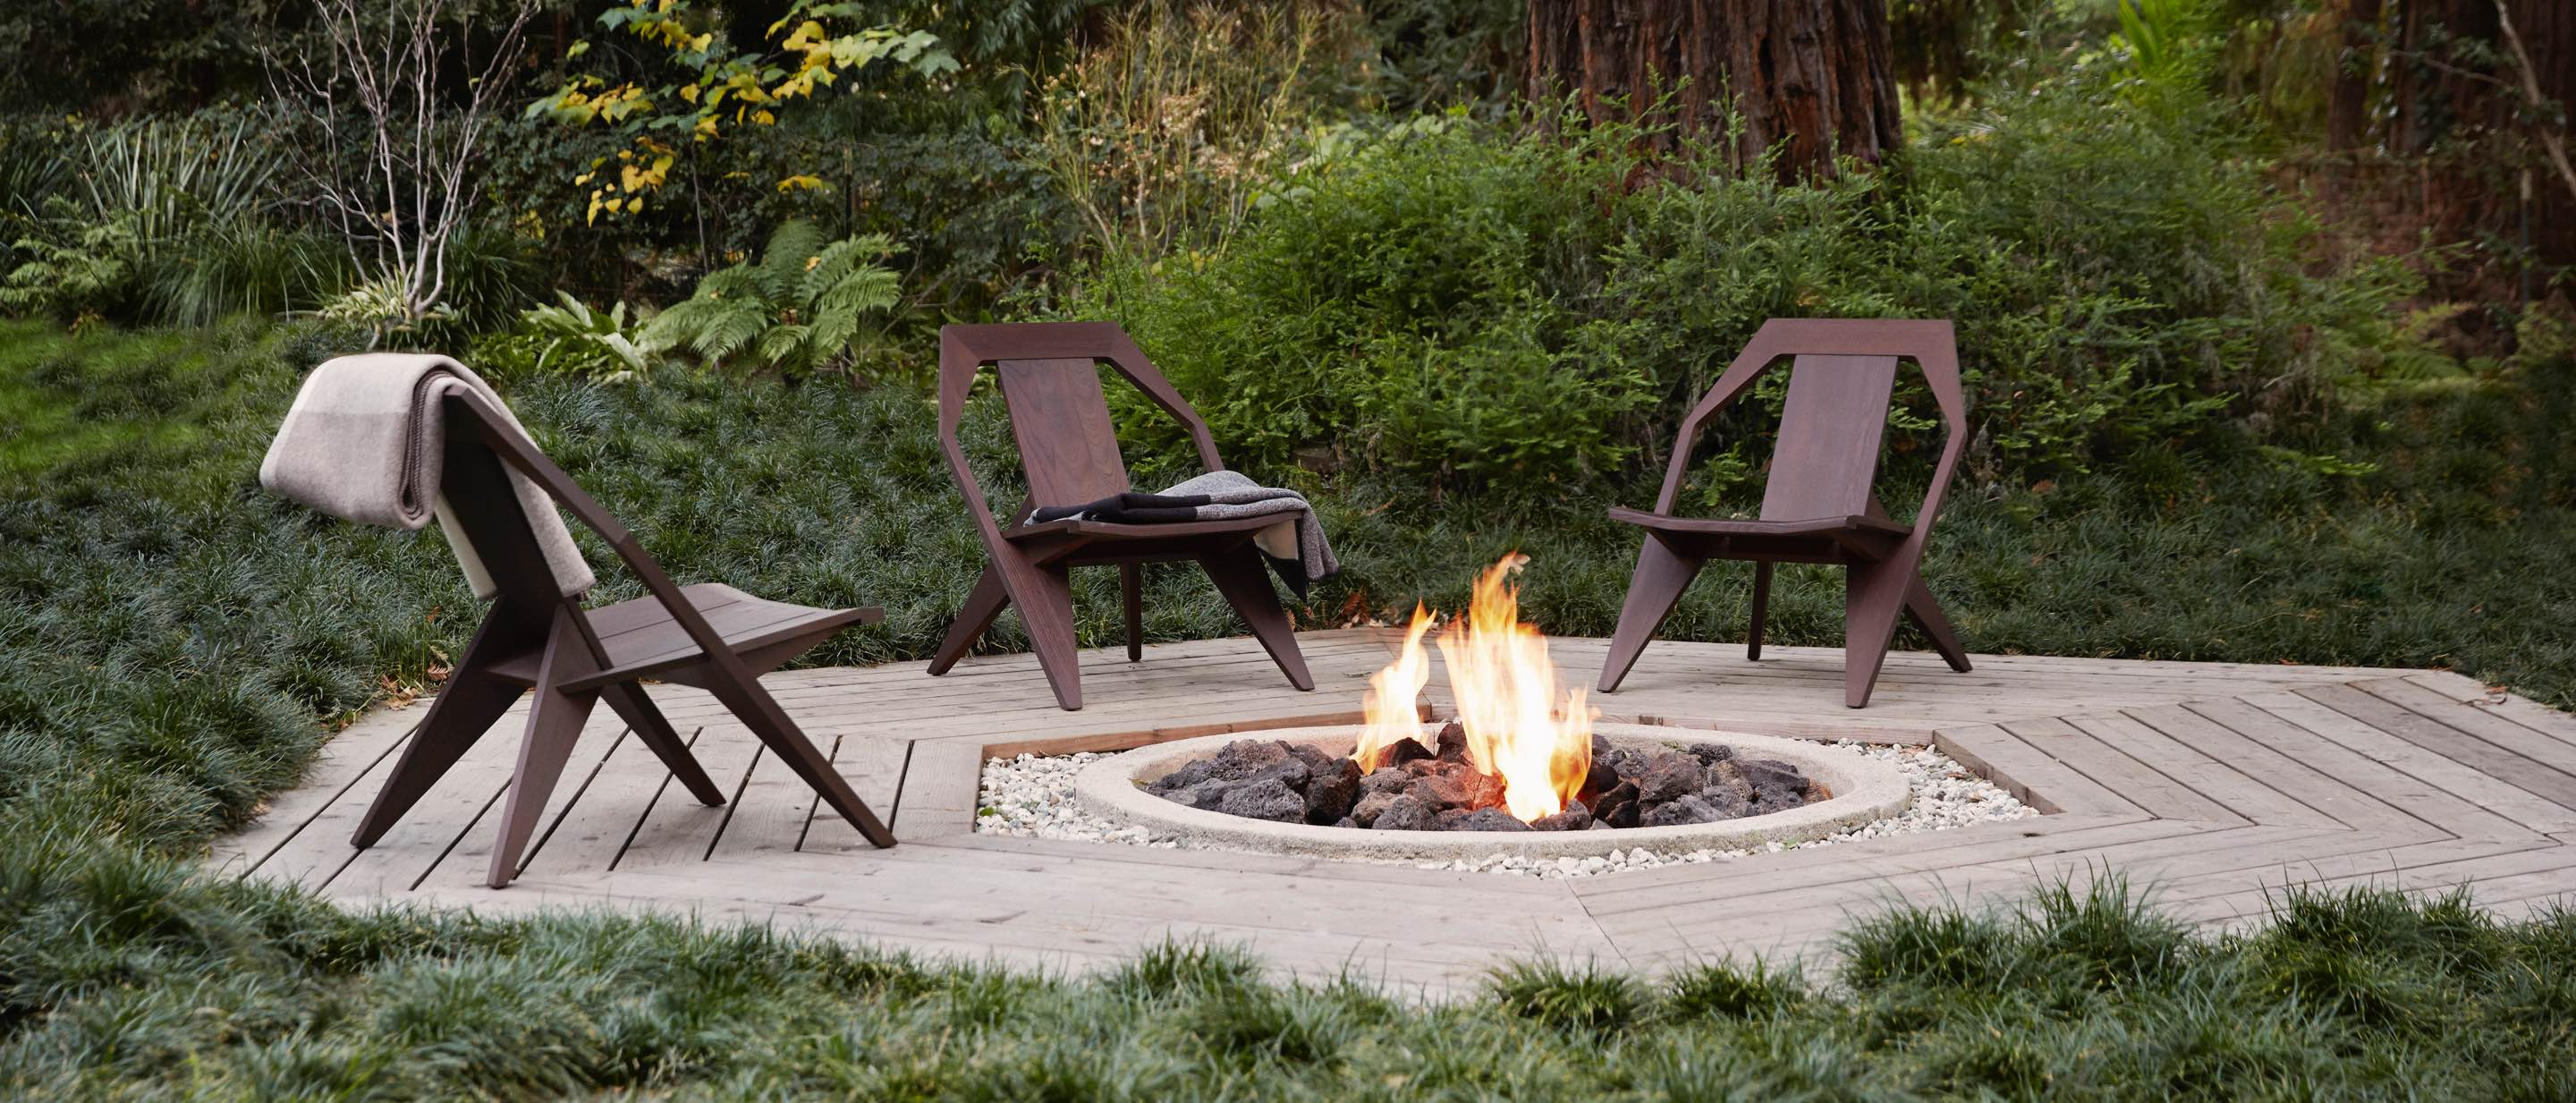 Three Mattiazzi Medici outdoor chairs on a hexagonal deck with a firepit in the middle.